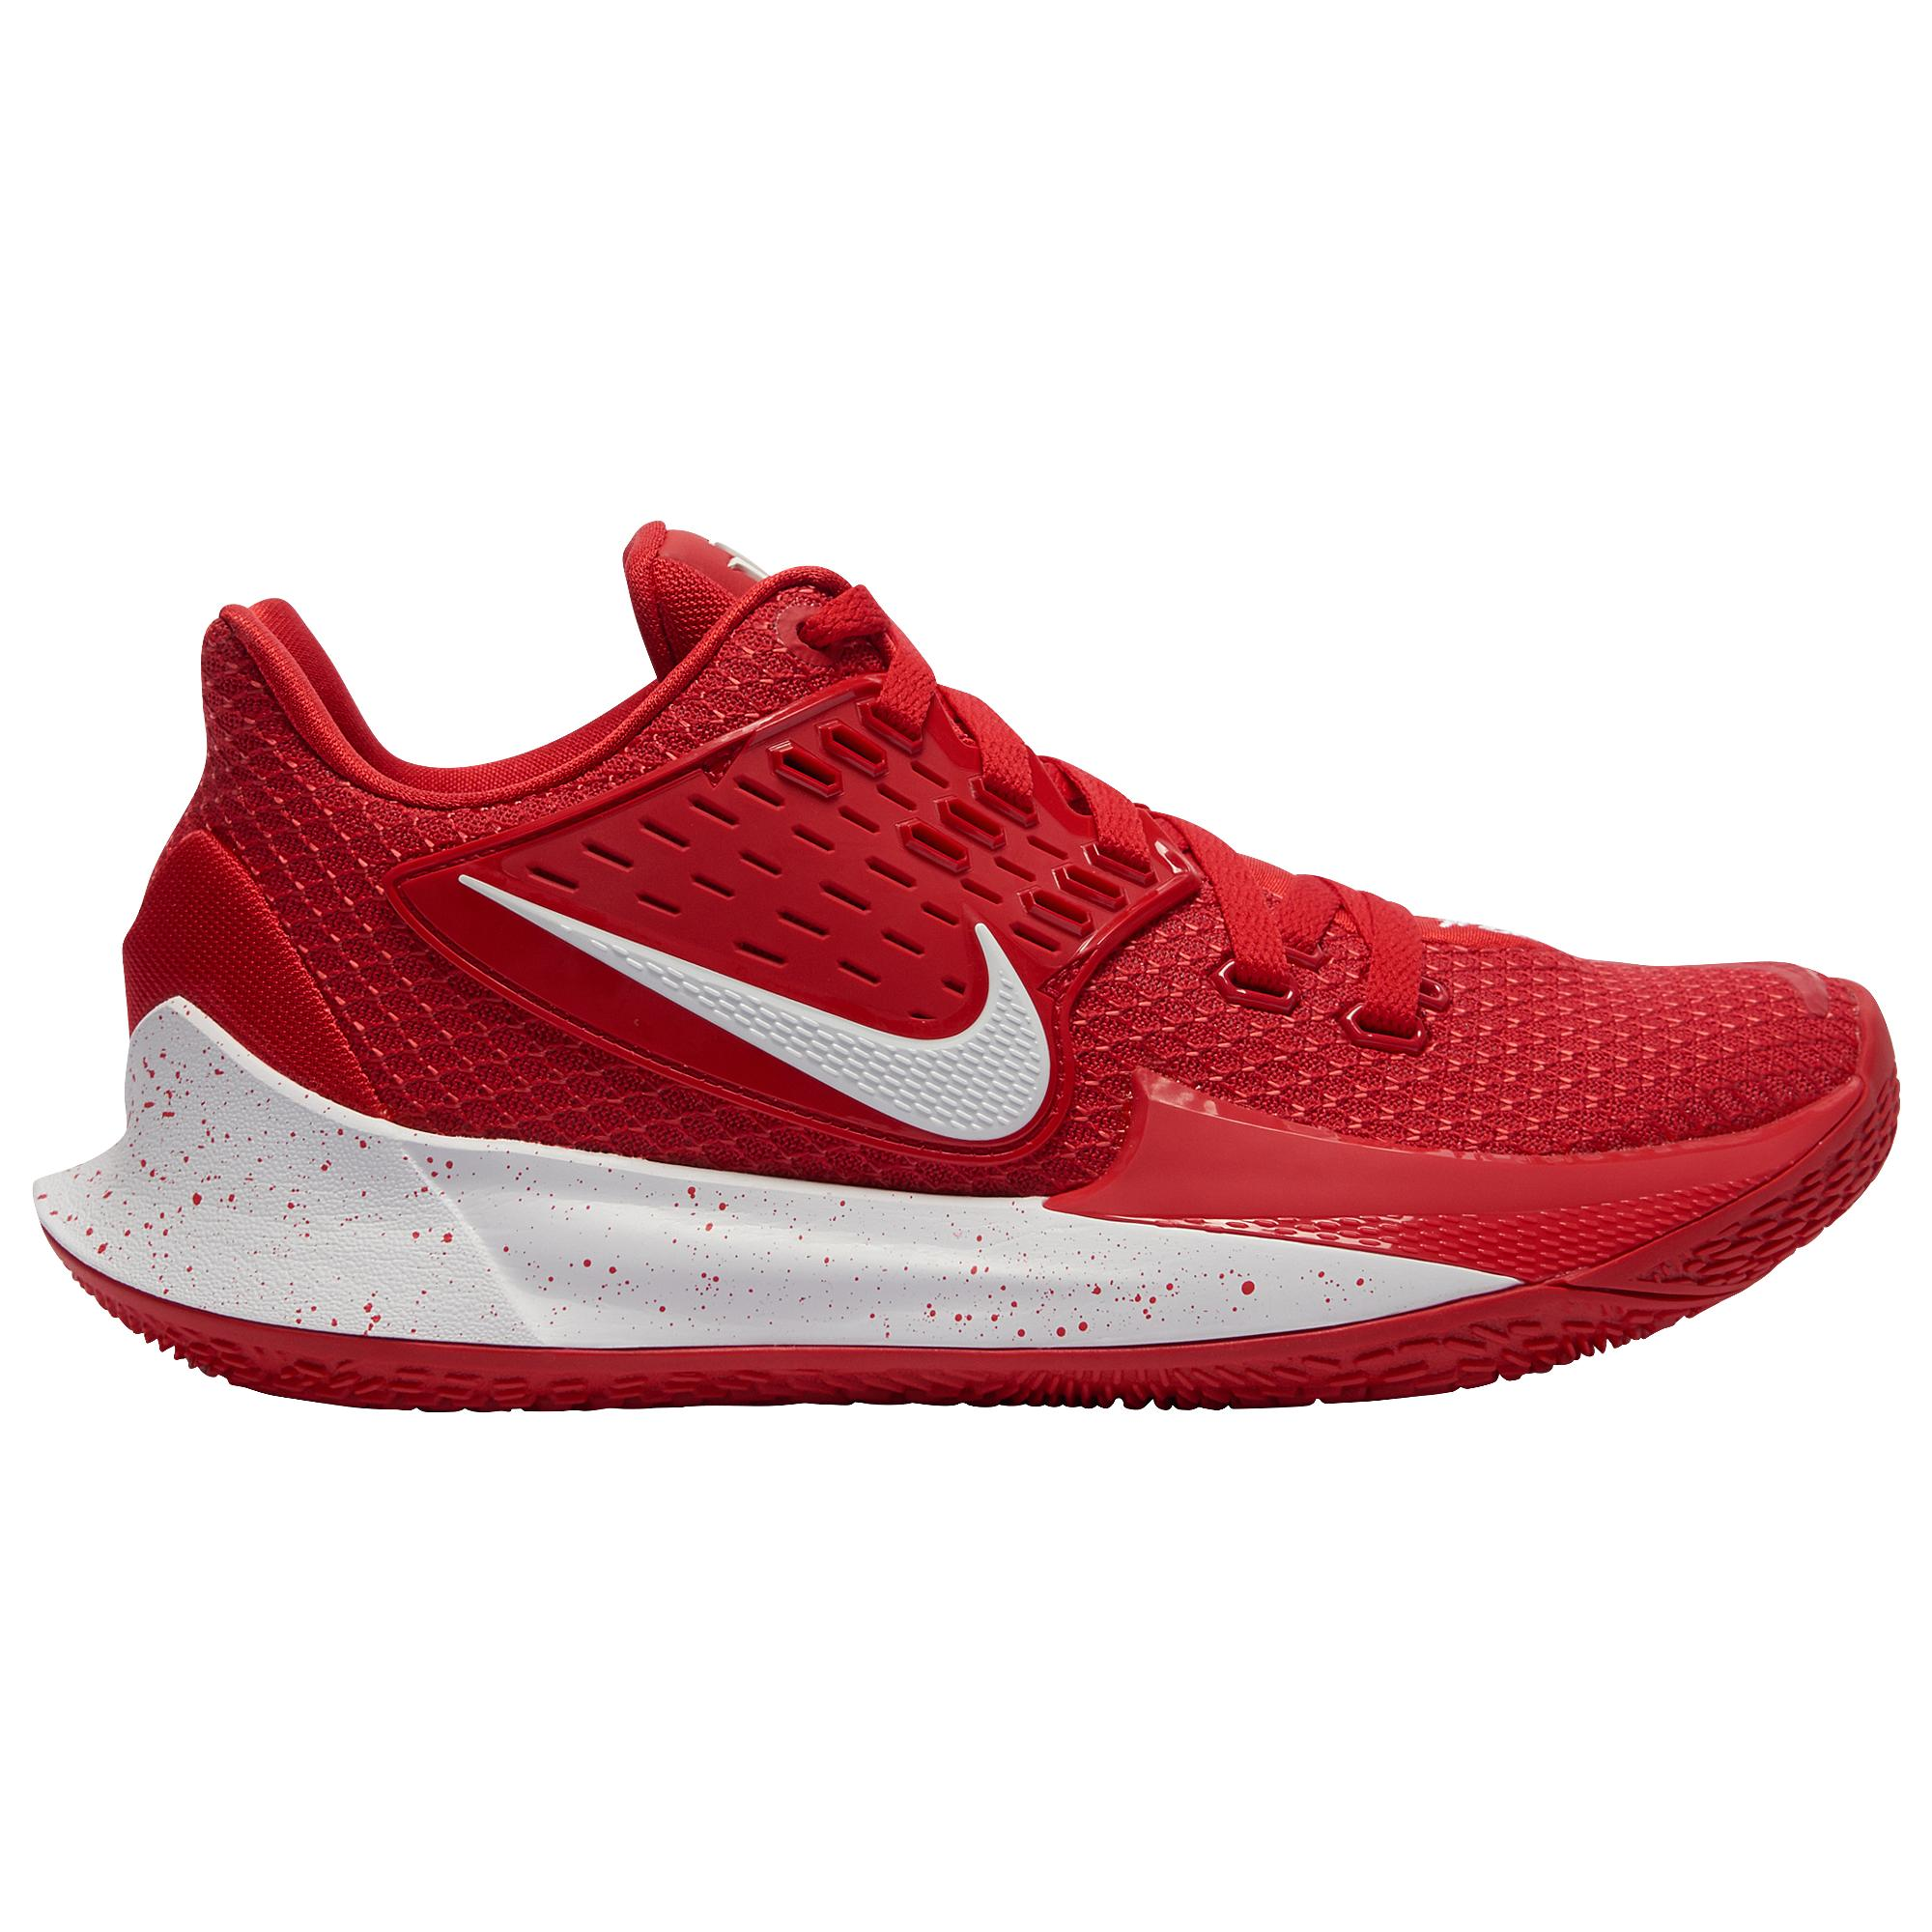 online store aea80 f4870 Men's Red Kyrie Low 2 Basketball Shoes